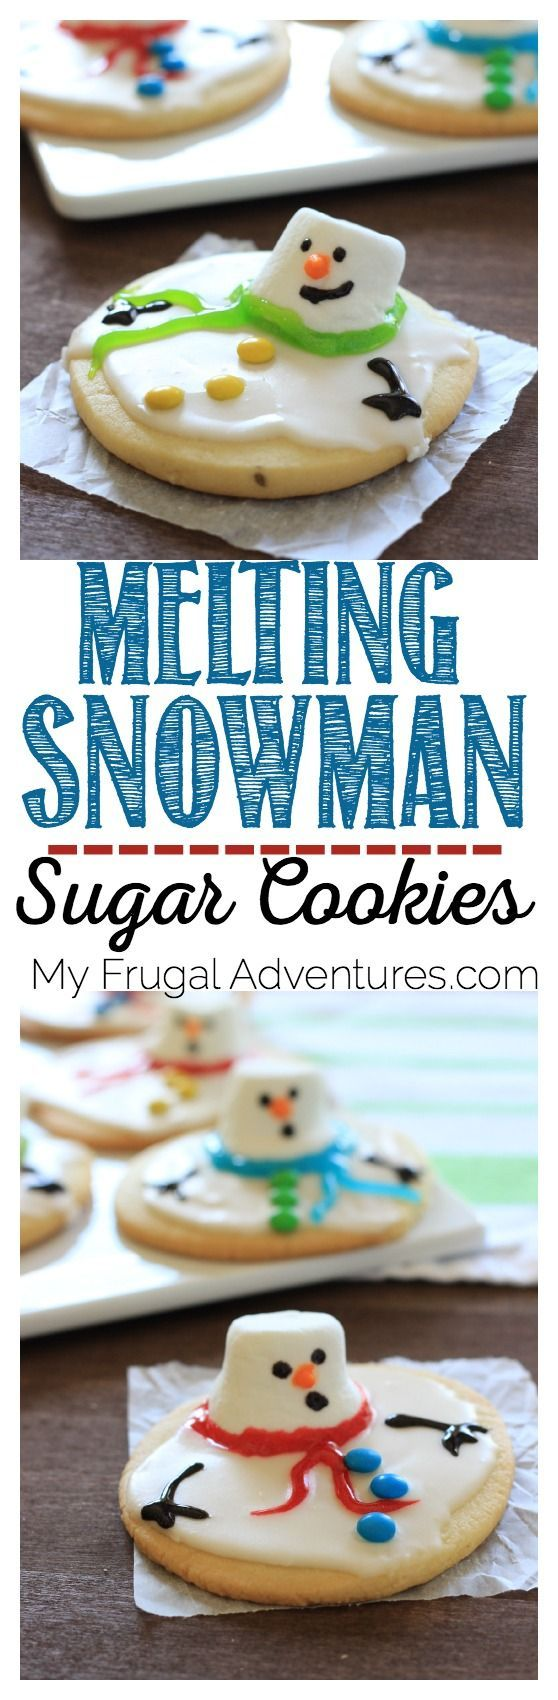 Melting Snowman Sugar Cookies- these are so adorable and so easy to make (not to mention delicious!)  Guaranteed to be the hit of your party or a perfect cookie to leave for Santa on Christmas Eve.